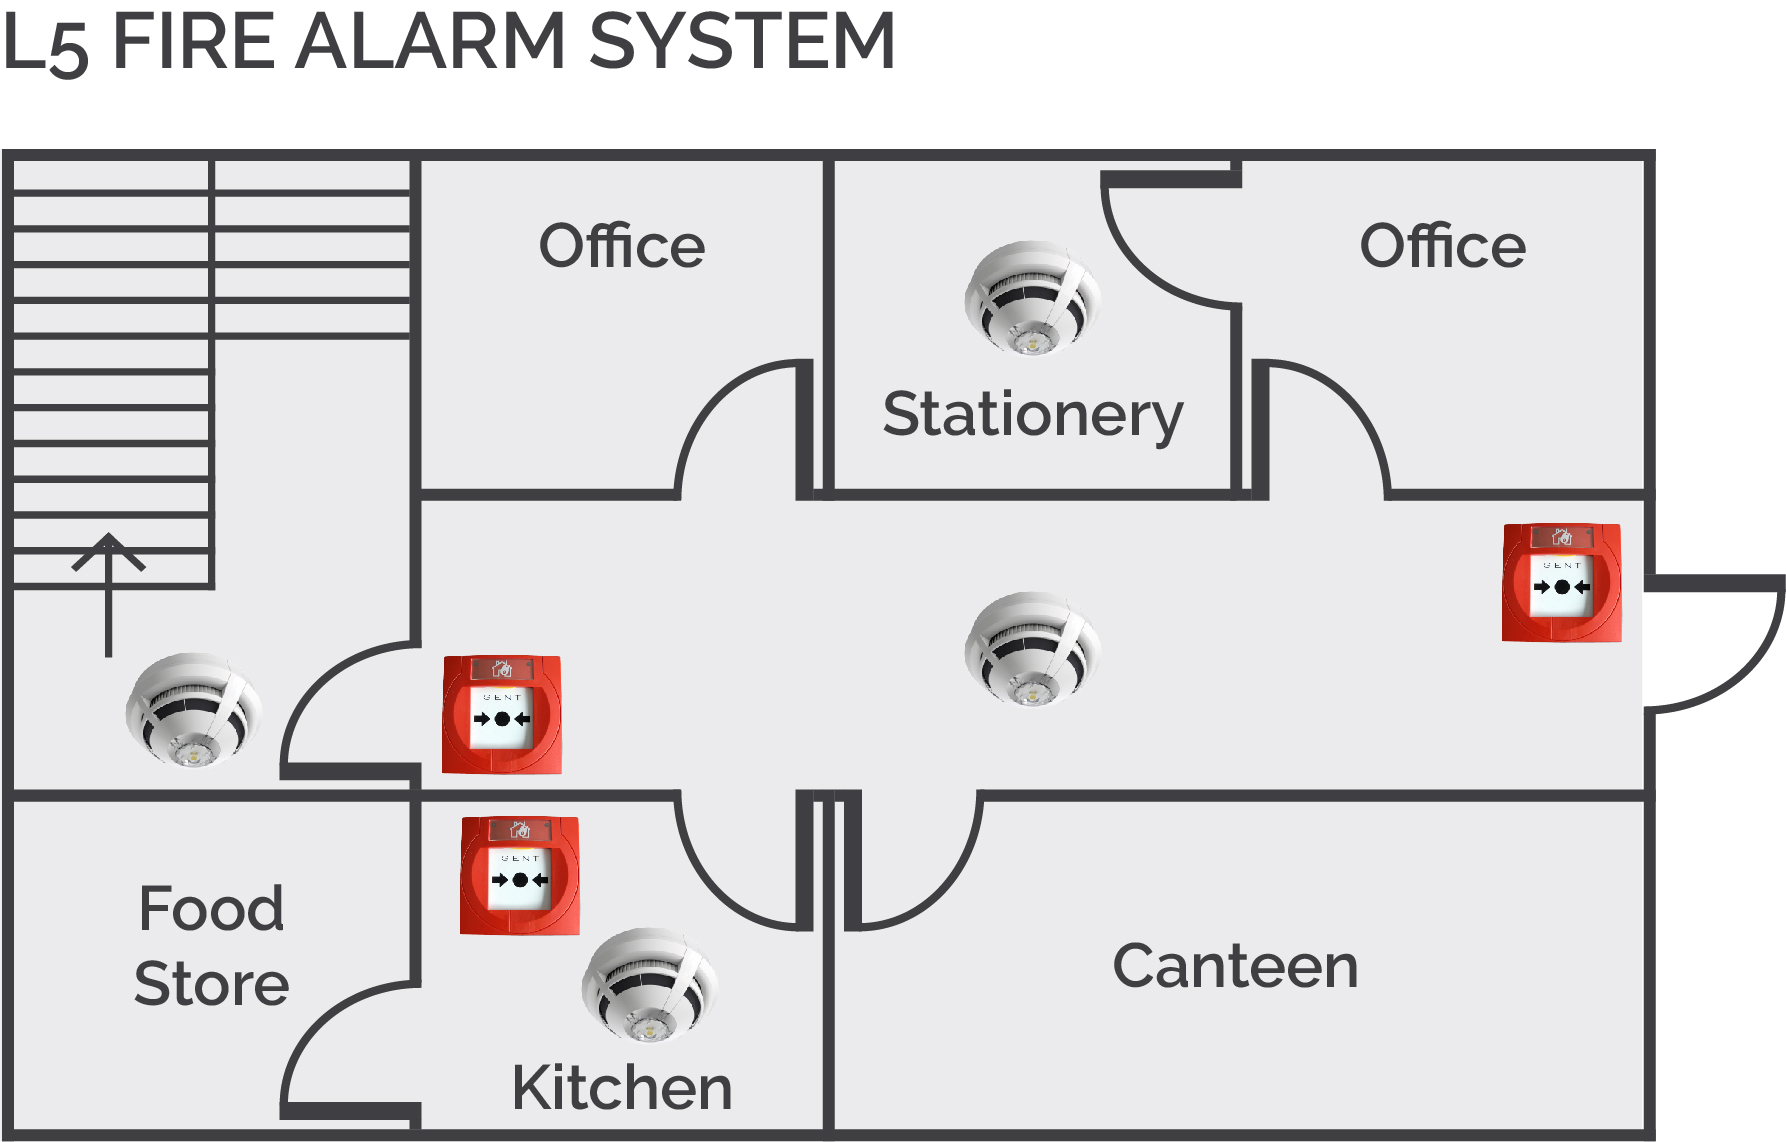 Home Security Monitoring U0026 Fire Alarm Systems In Manual Guide